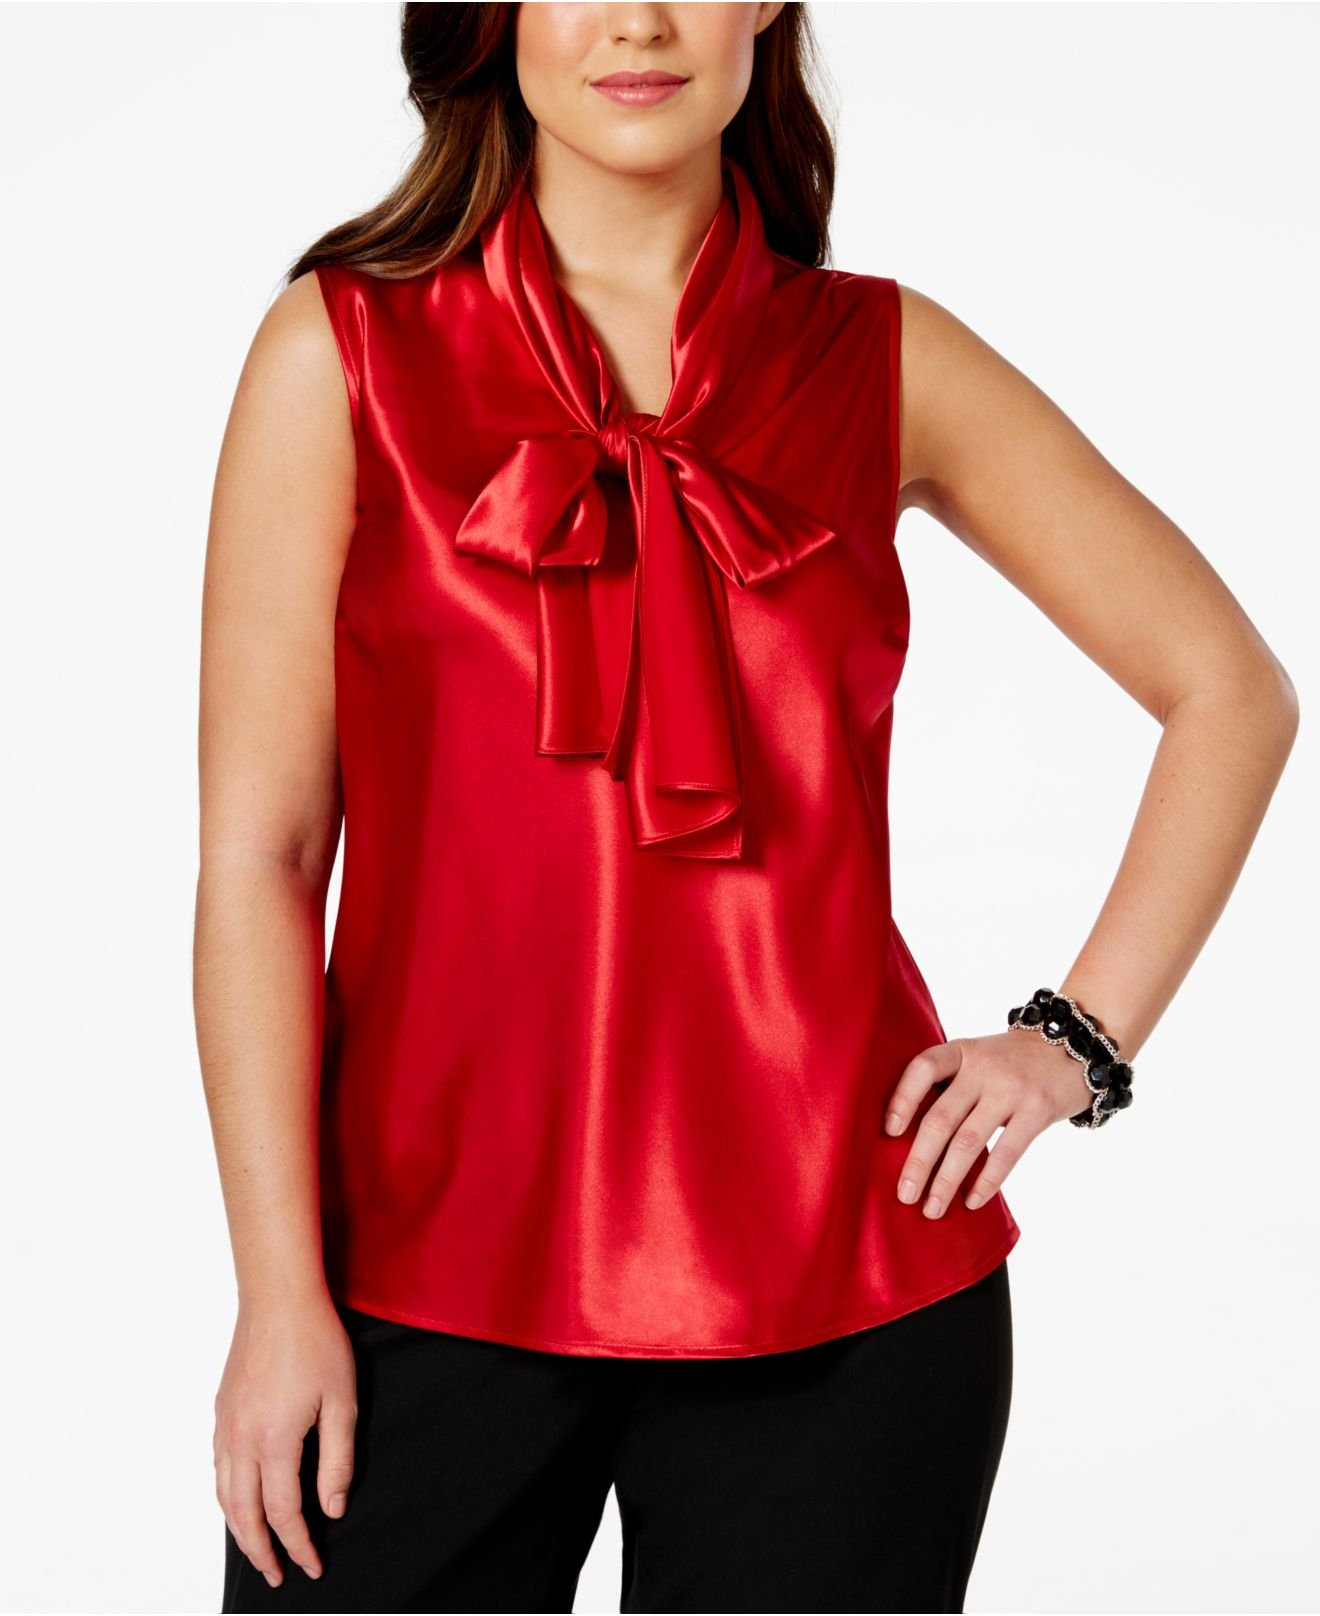 93821a29f56c6 Lyst Nine West Plus Size Bow Tie Satin Blouse In Red